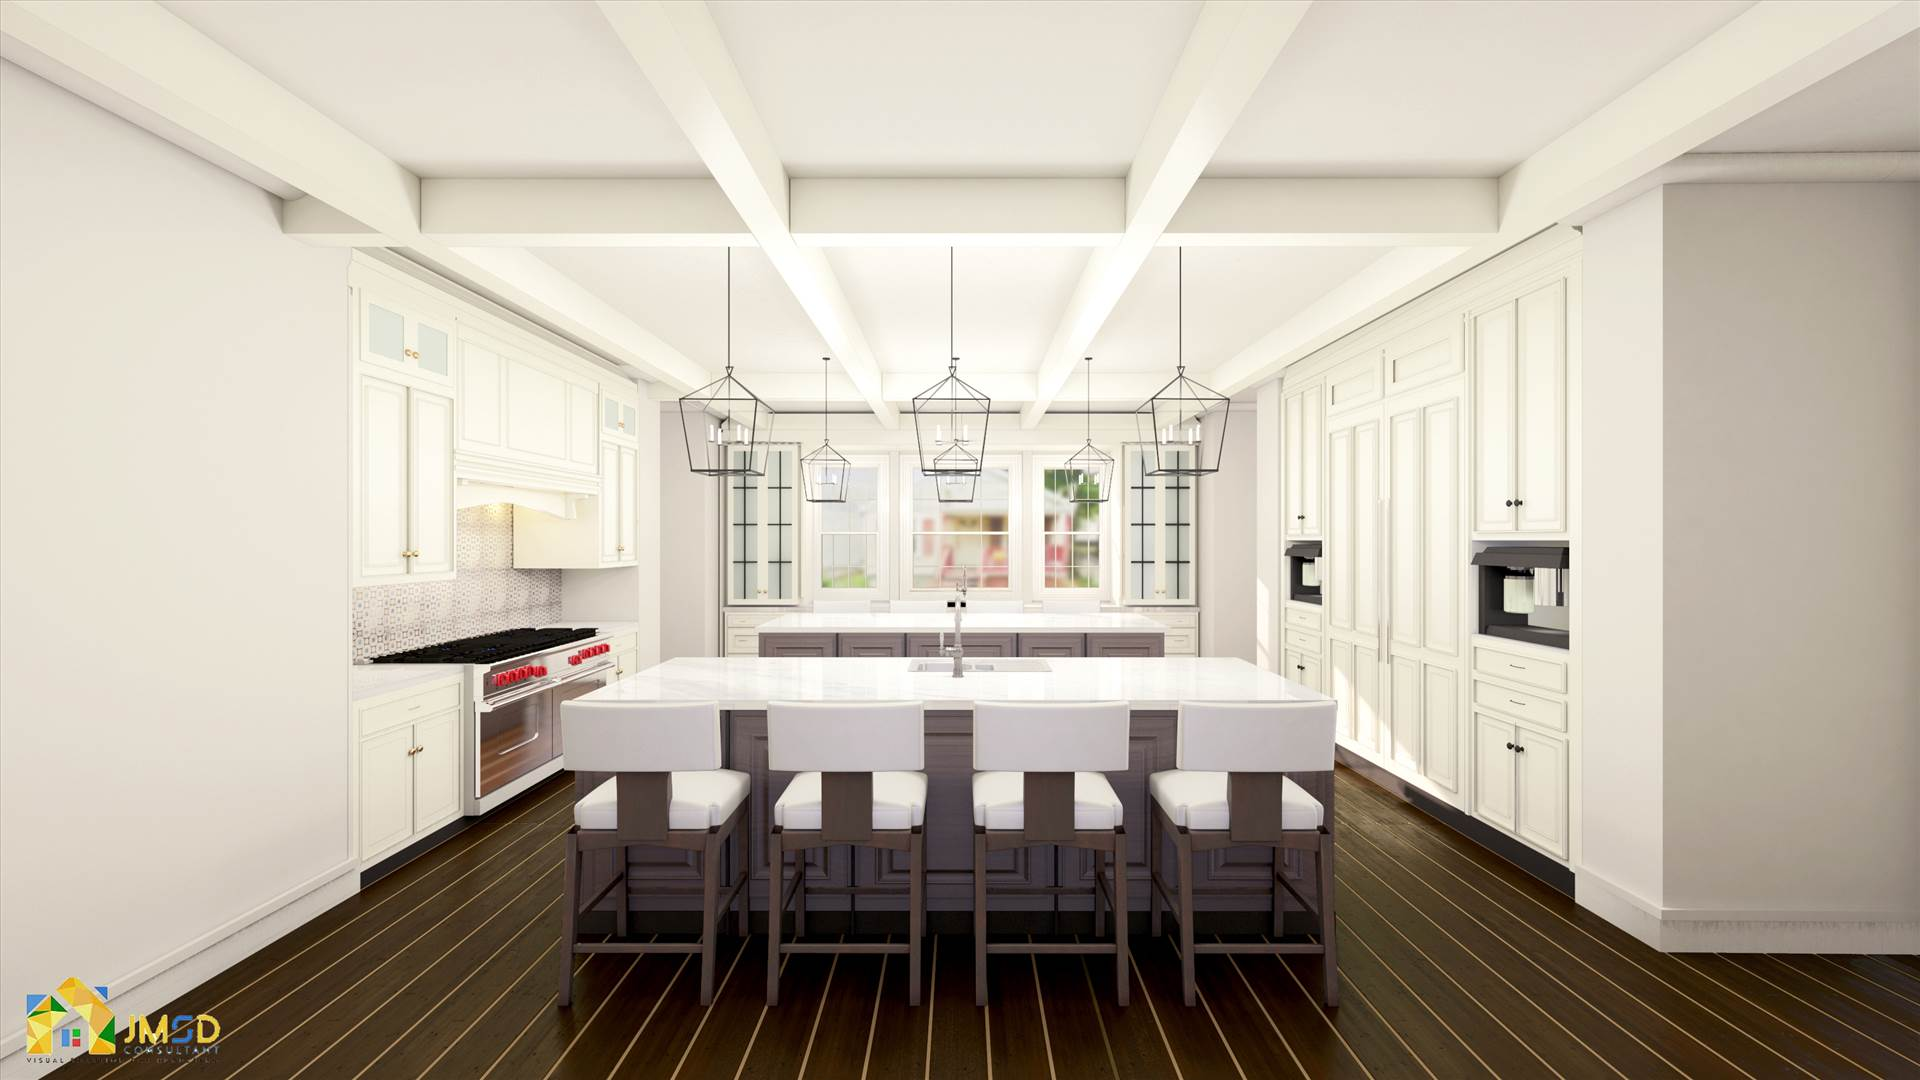 Kitchen architectural 3d interior rendering los angeles 3D Interior Rendering Services by JMSDCONSULTANT